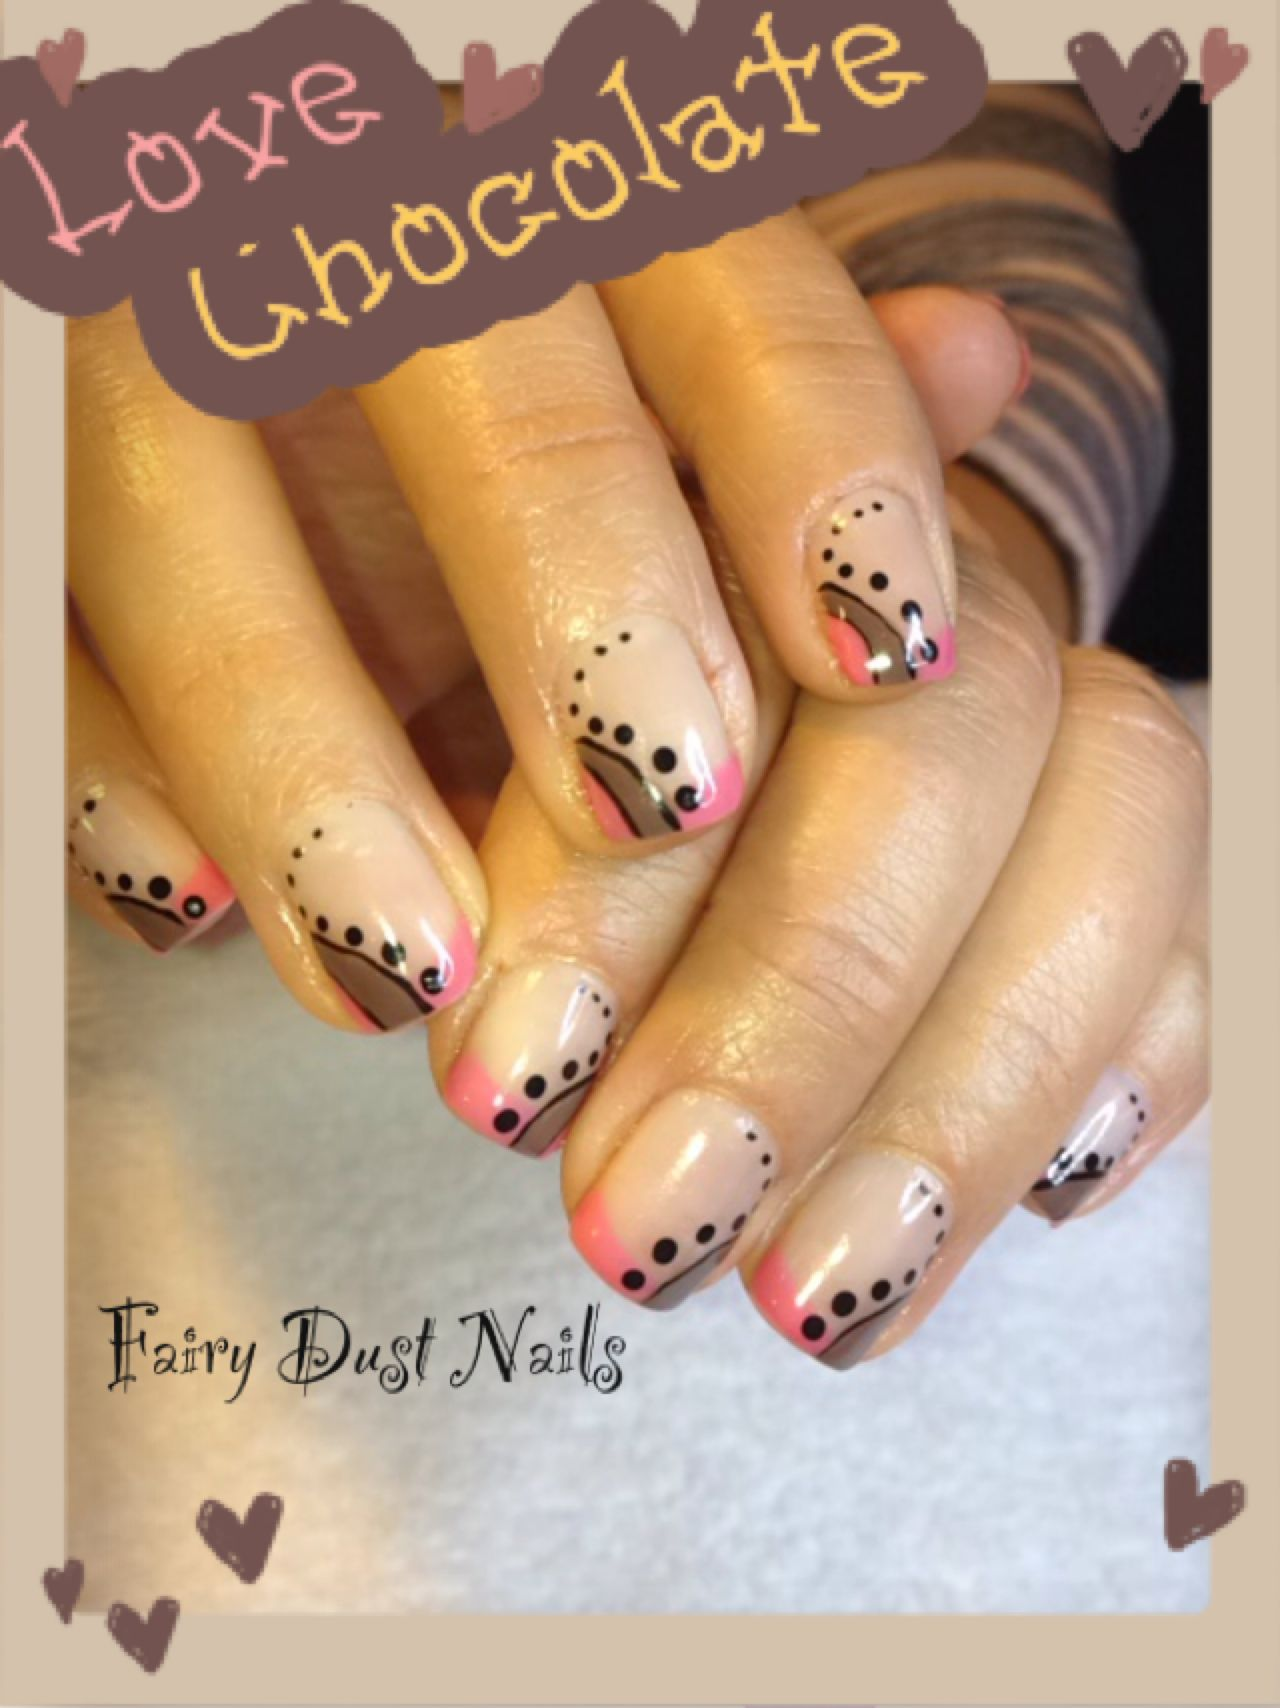 Nails. Taupe and pink french style nails | Nail art: french manicure ...